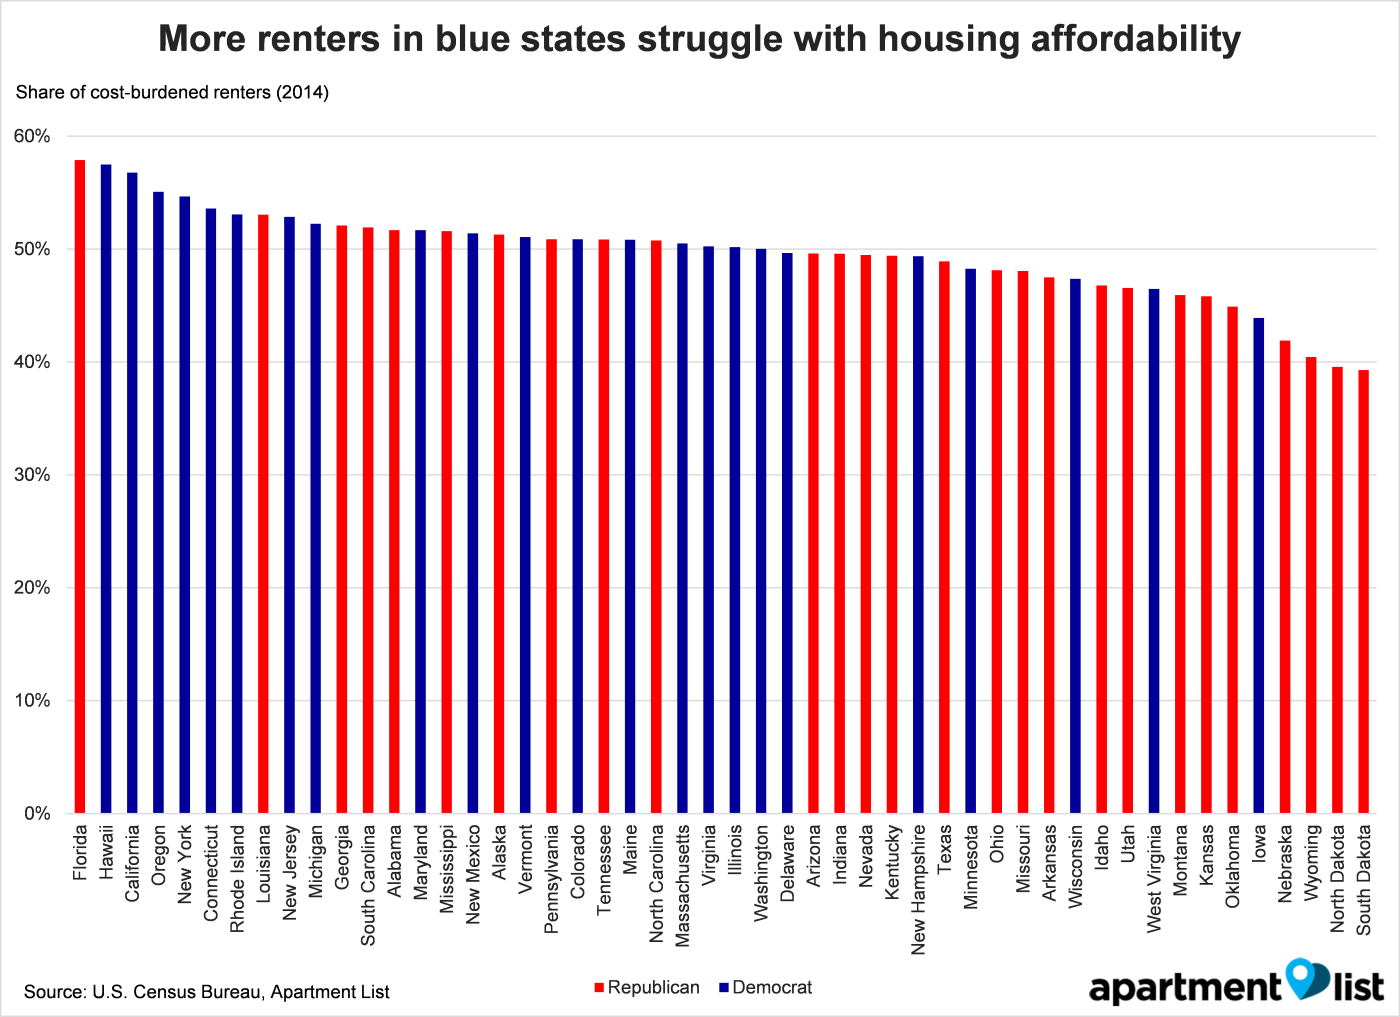 Are Red or Blue States More Affordable for Renters?